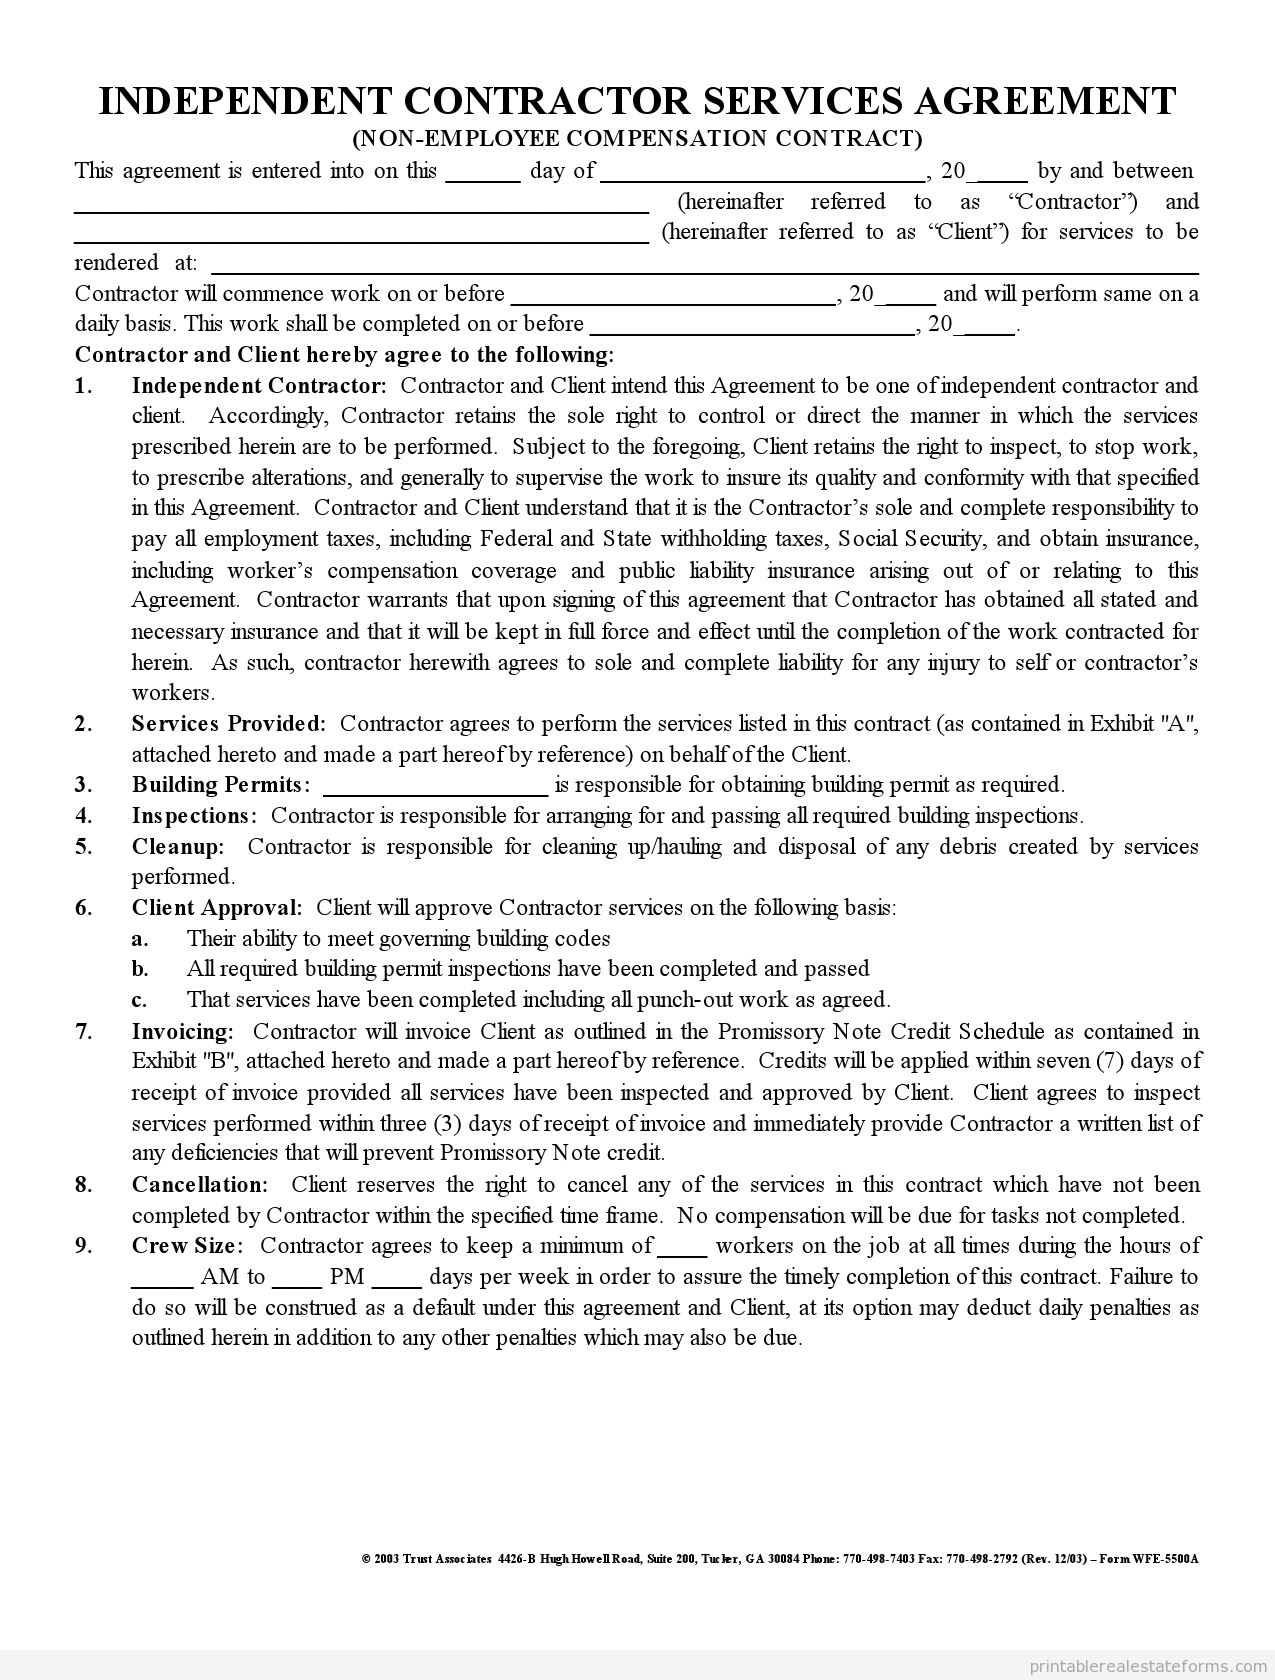 Subcontractor Resume Sample Free Printable Independent Contractor Agreement Form